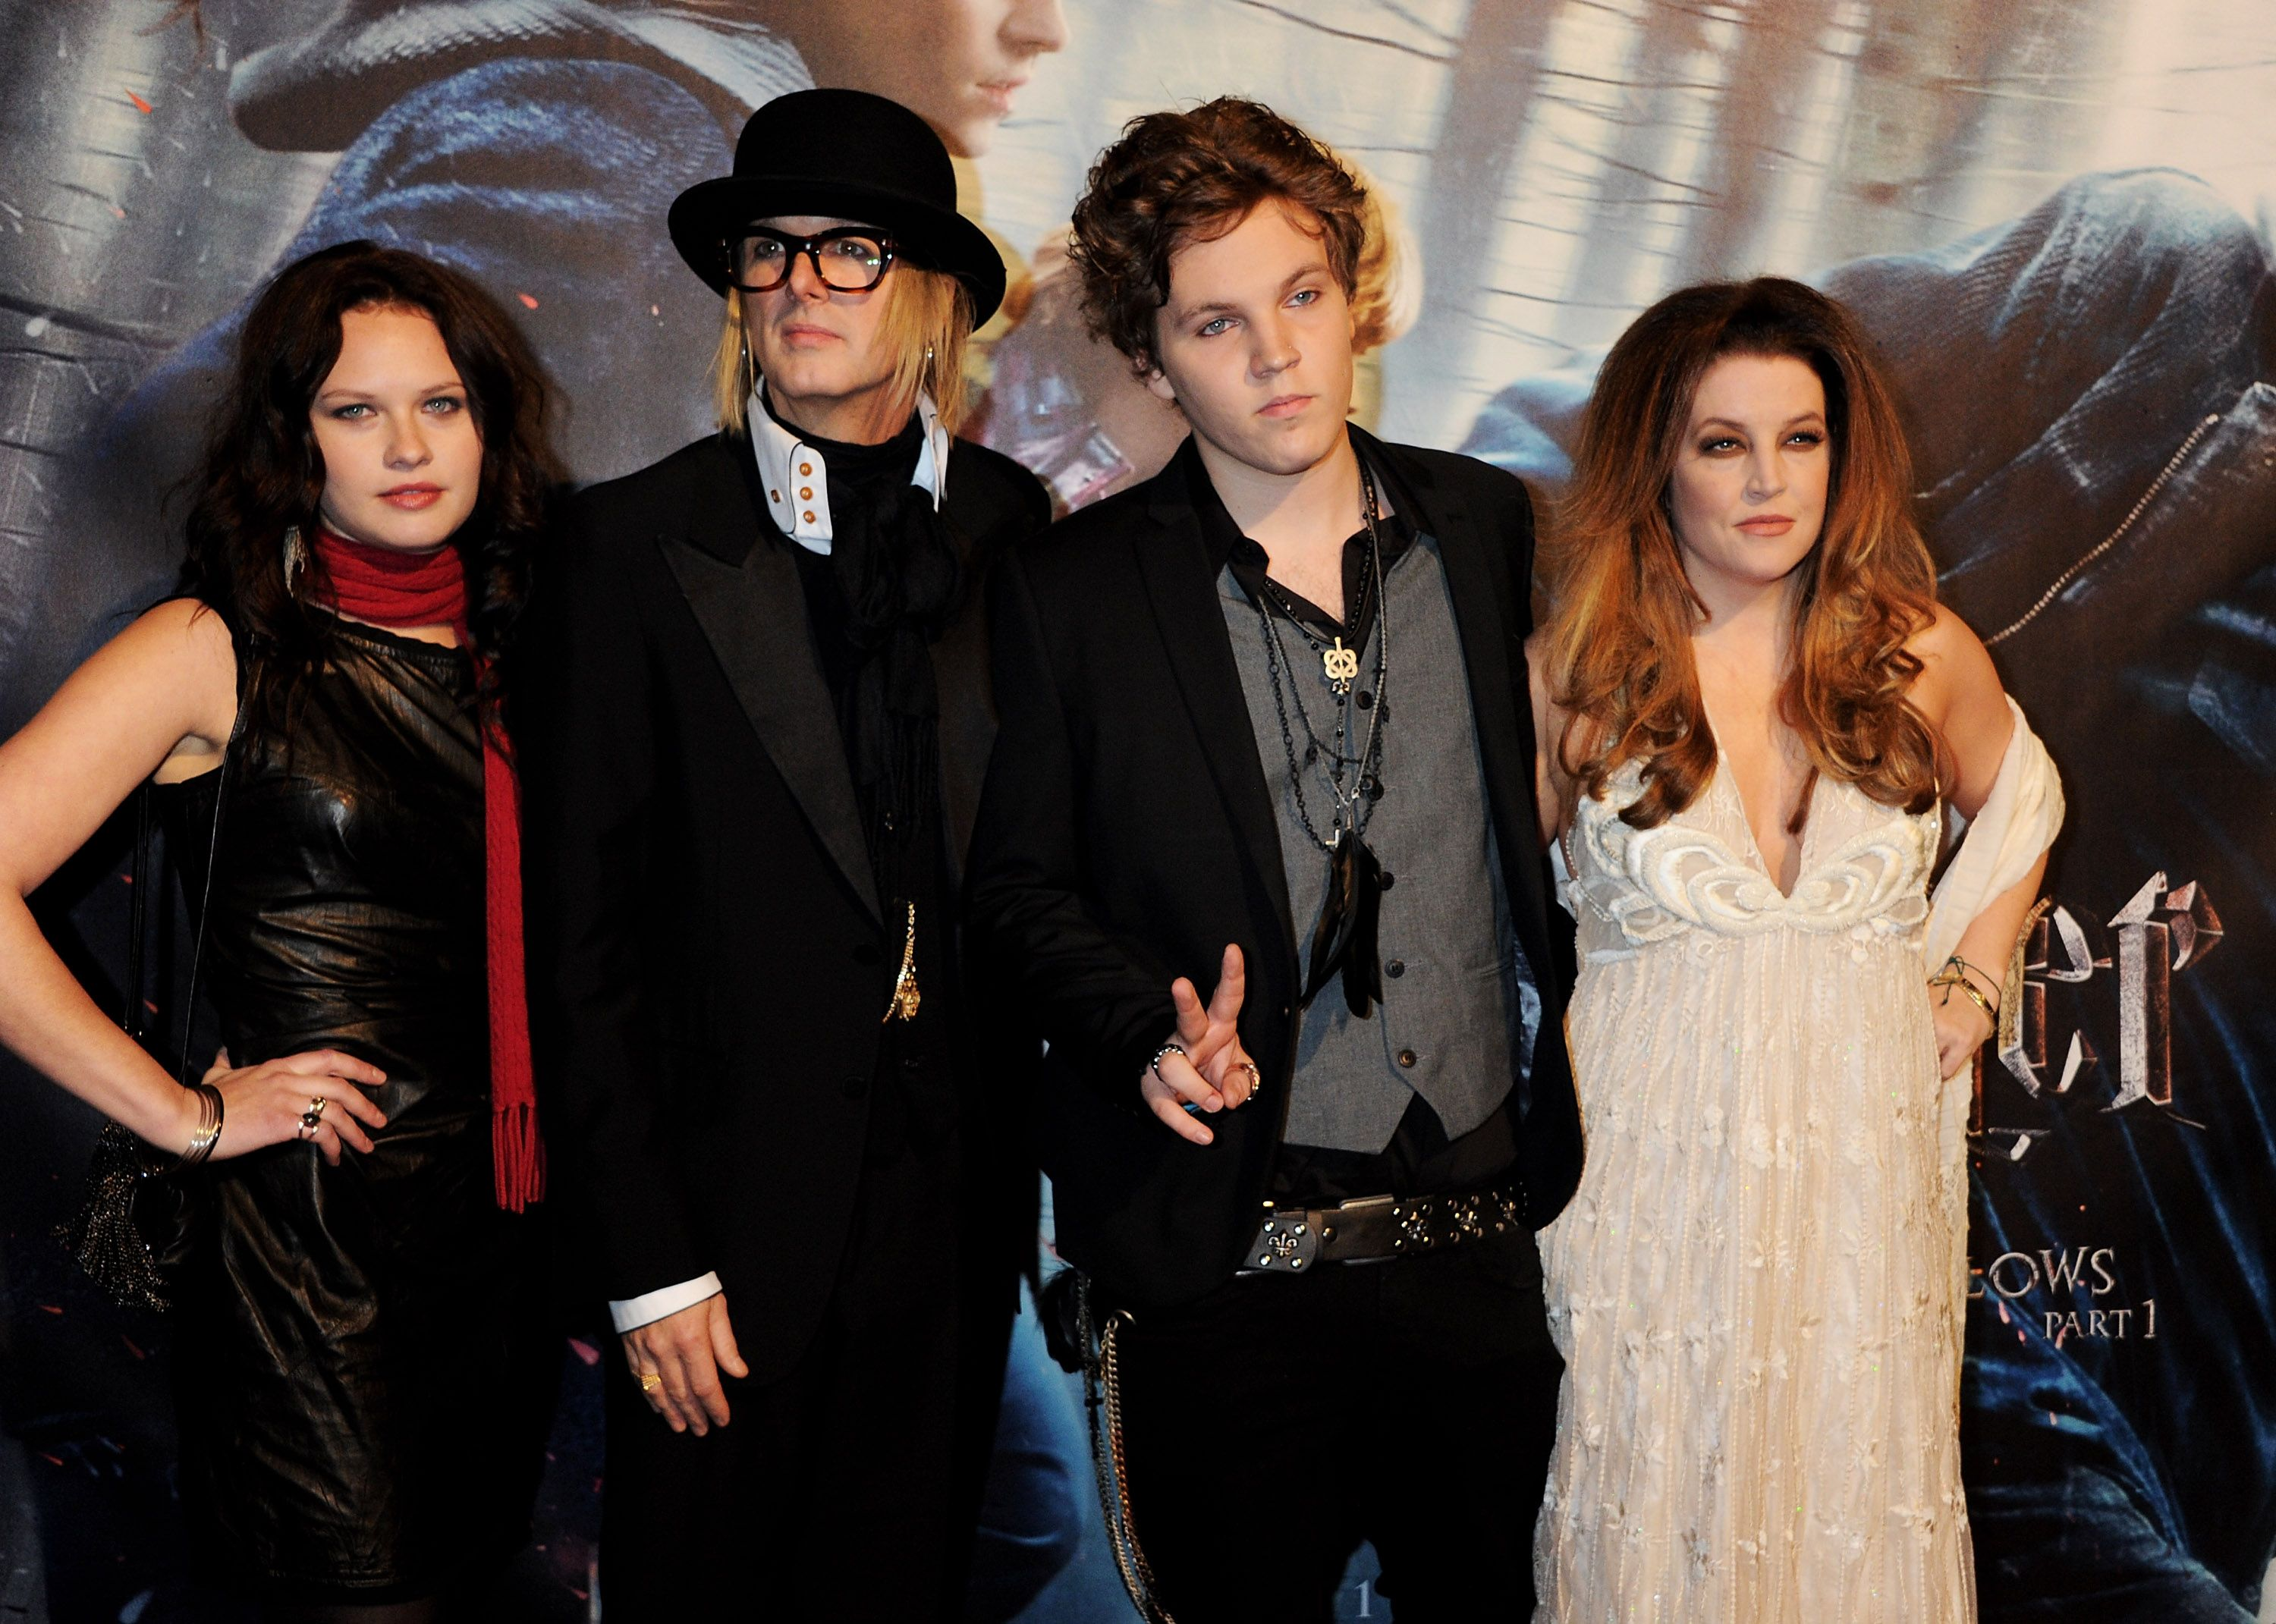 """A guest, Michael Lockwood, Benjamin Keough, and Lisa Marie Presley atthe World Premiere of """"Harry Potter And The Deathly Hallows: Part 1""""on November 11, 2010, in London, England 